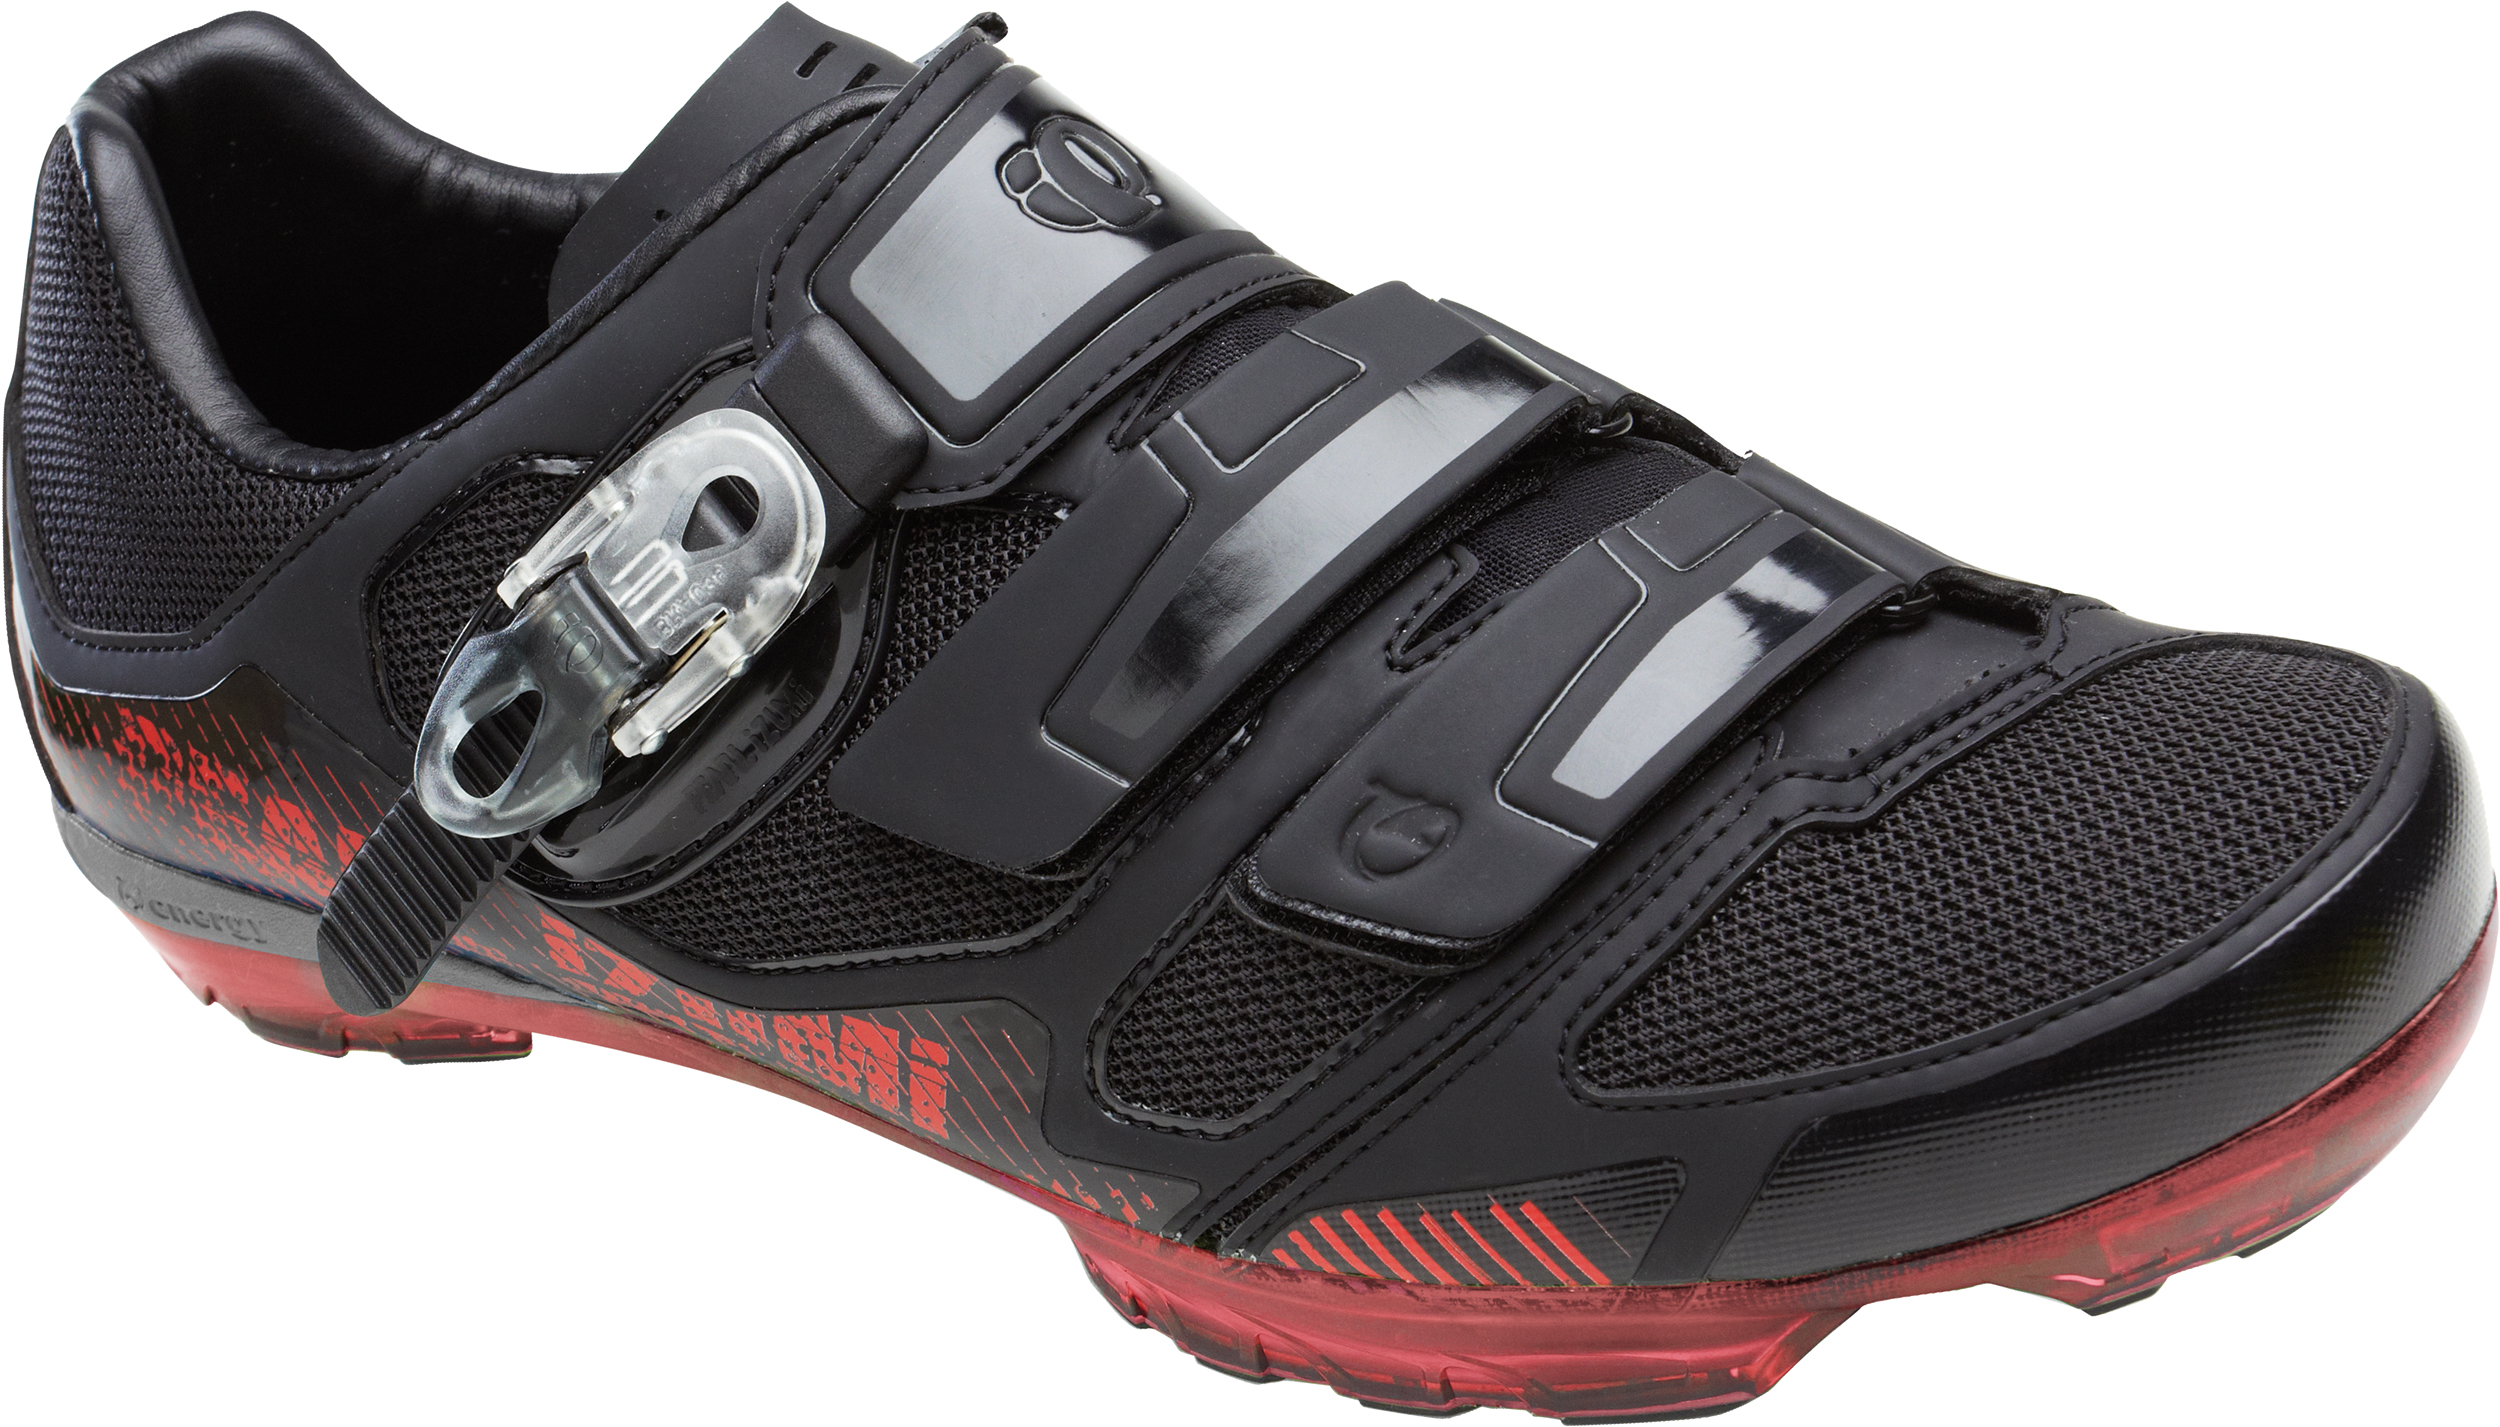 Chaussures Vélo Project Izumi Hommes 3 X Pearl De 0 67ybfg